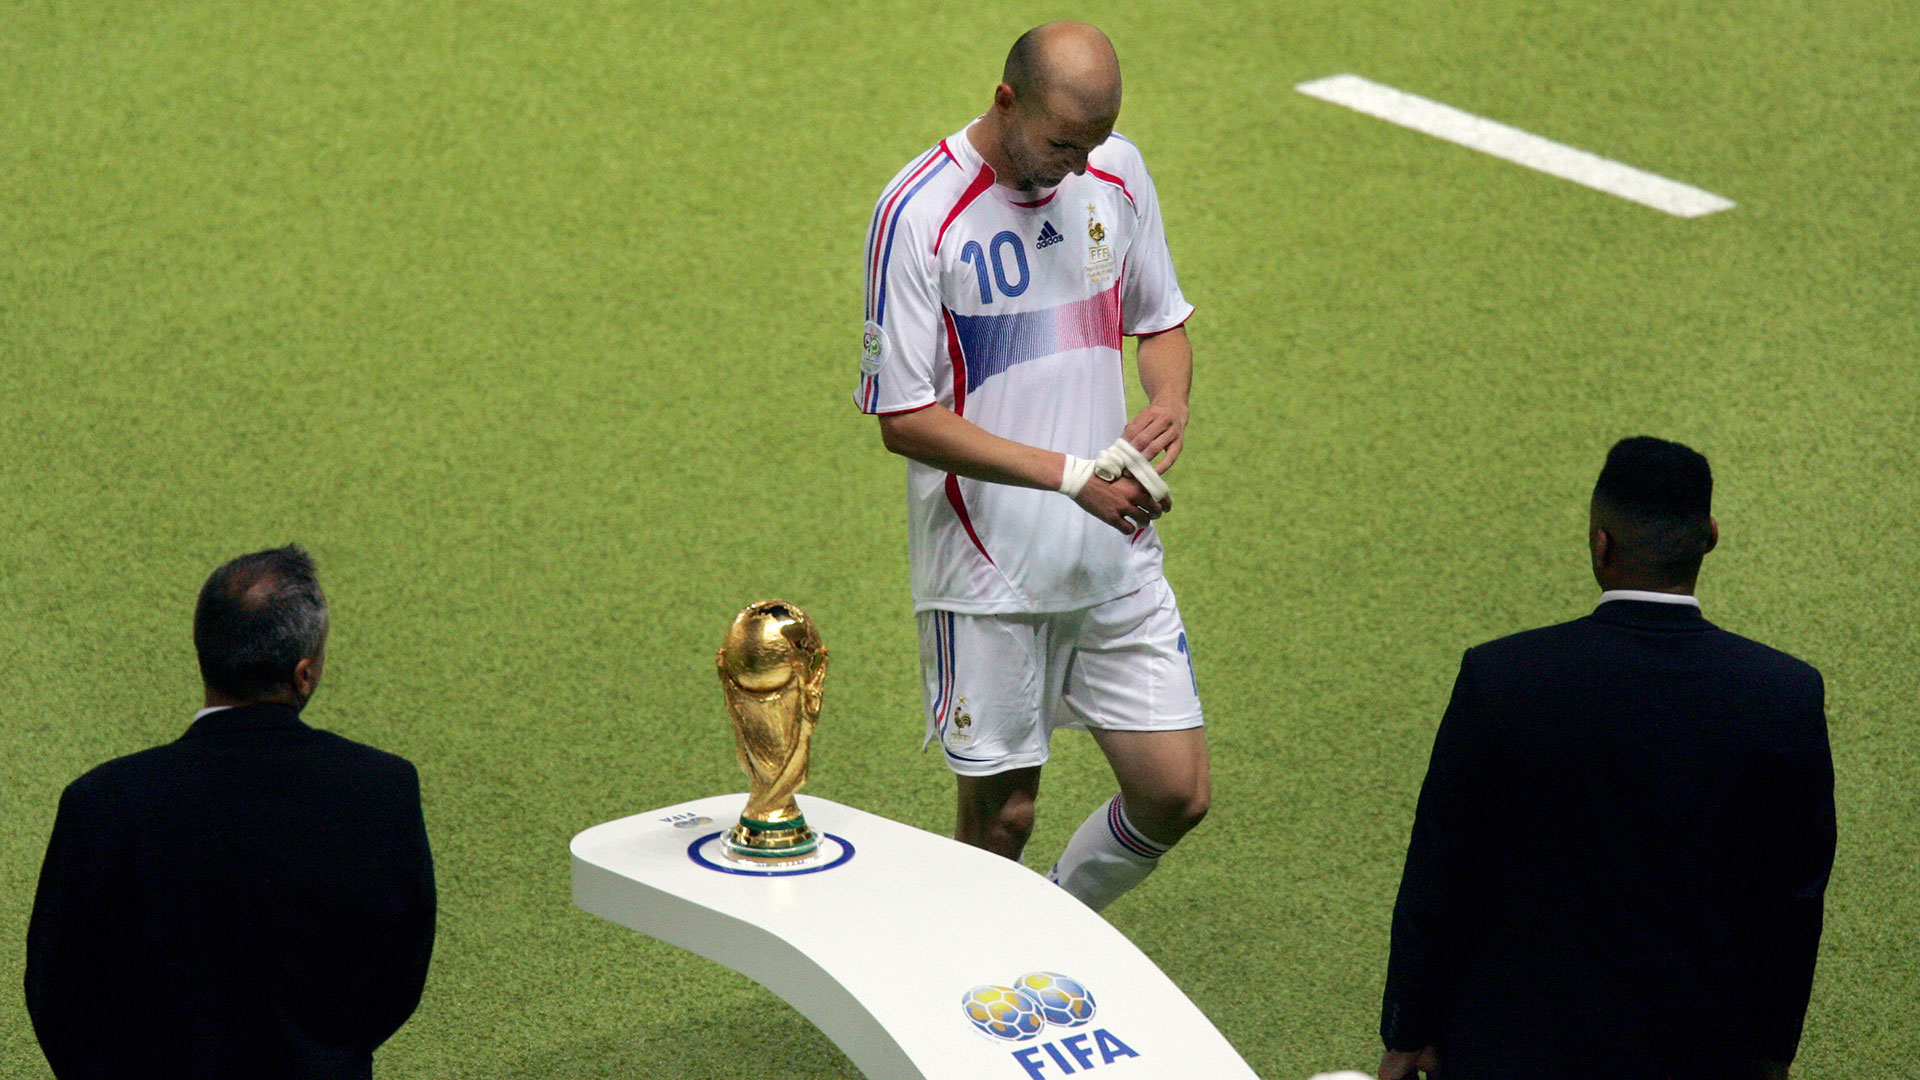 Zinedine Zidane France Italy 2006 World Cup final